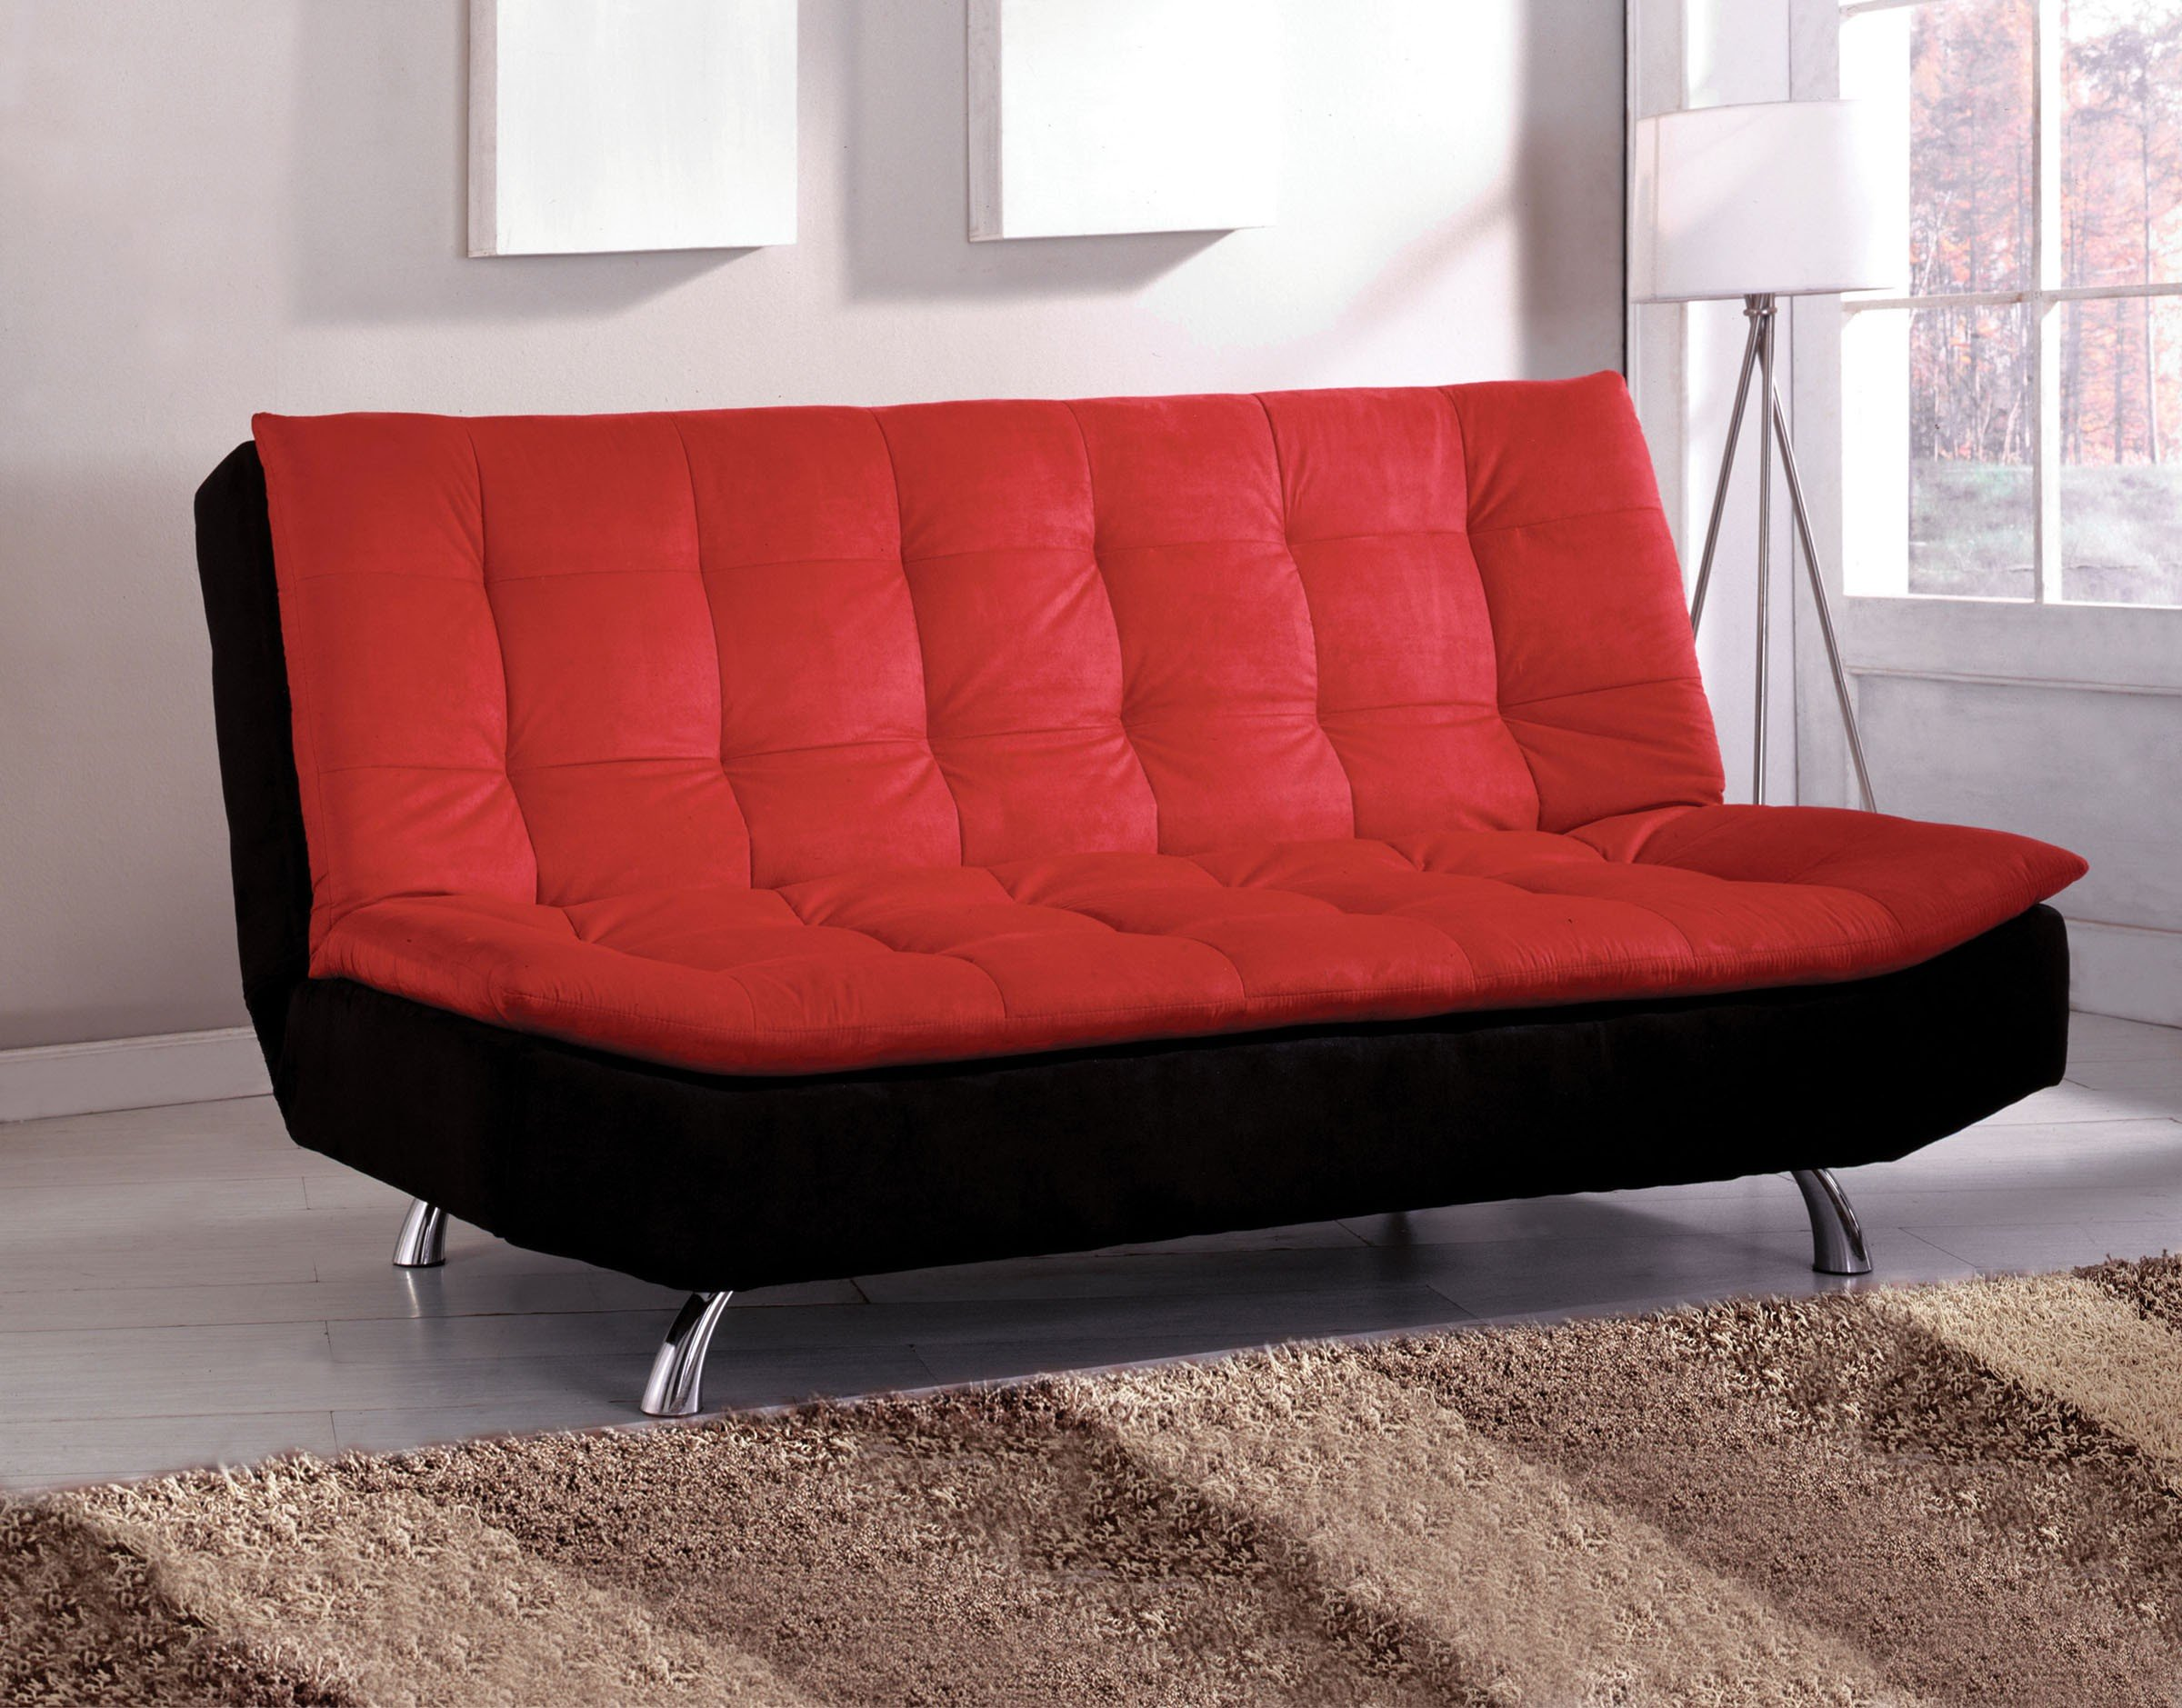 Contemporary Red and Black Microfiber Futon